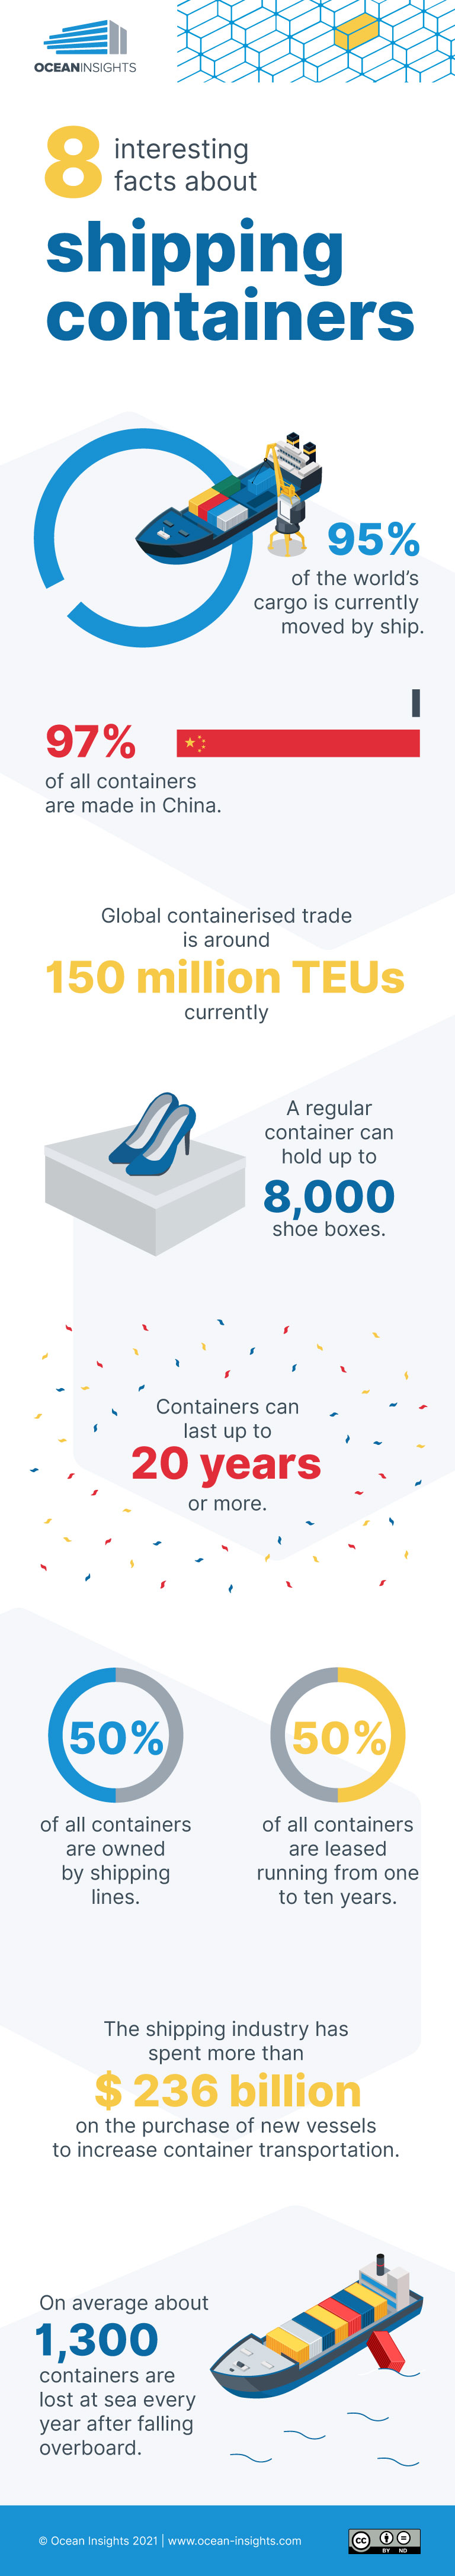 infographic shipping container